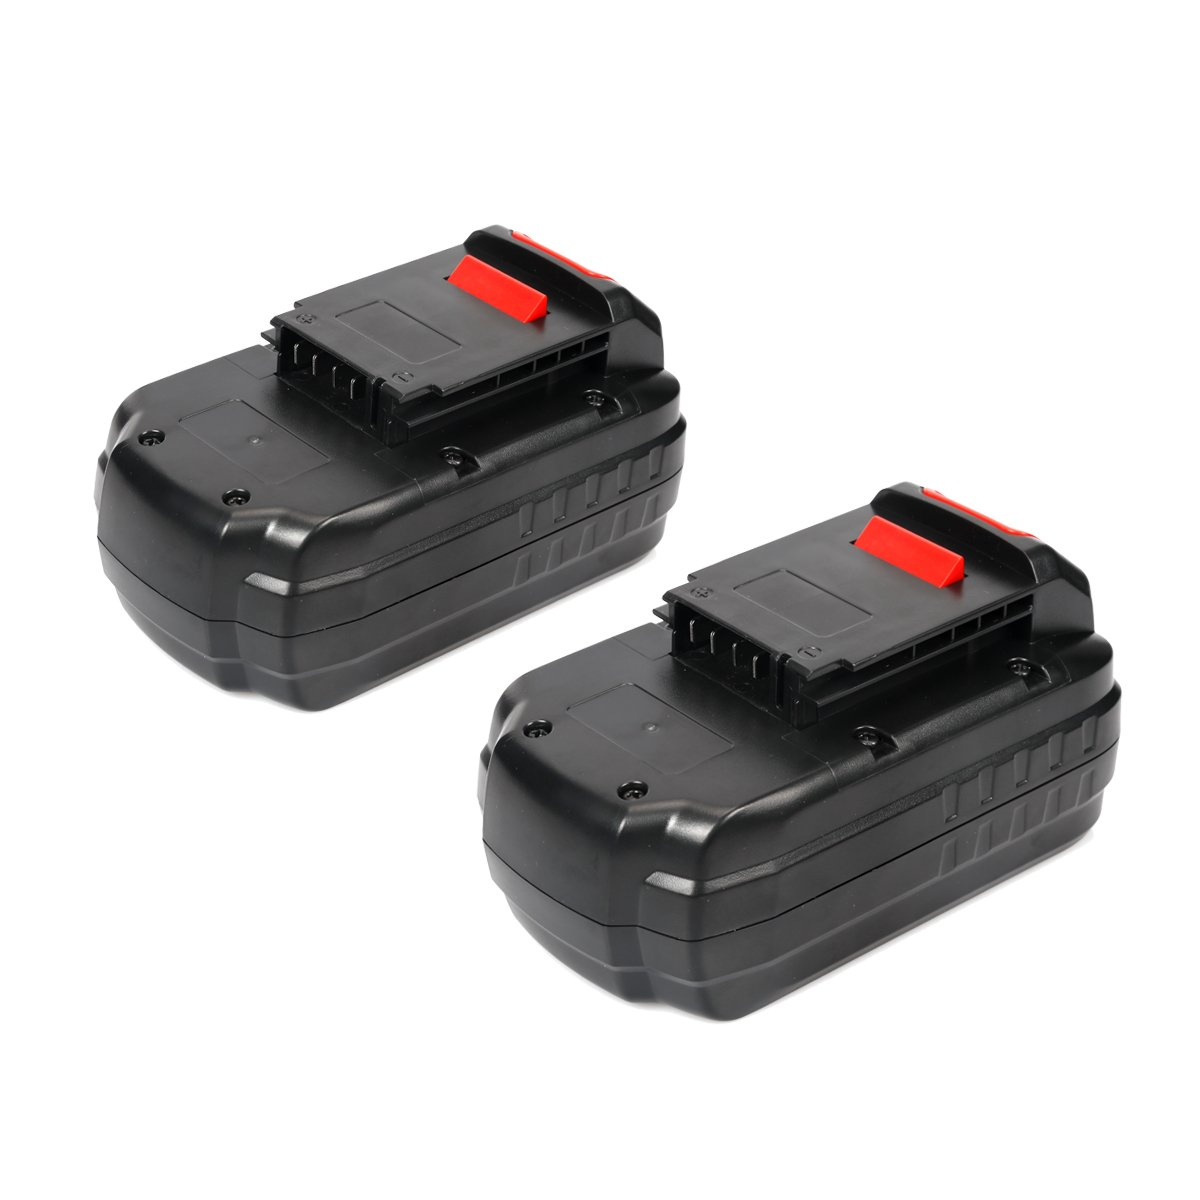 Energup 2 Pack 18V 3000mAh Replacement Battery for Porter Cable PC18B-2 18-Volt Cordless Tools Batteries